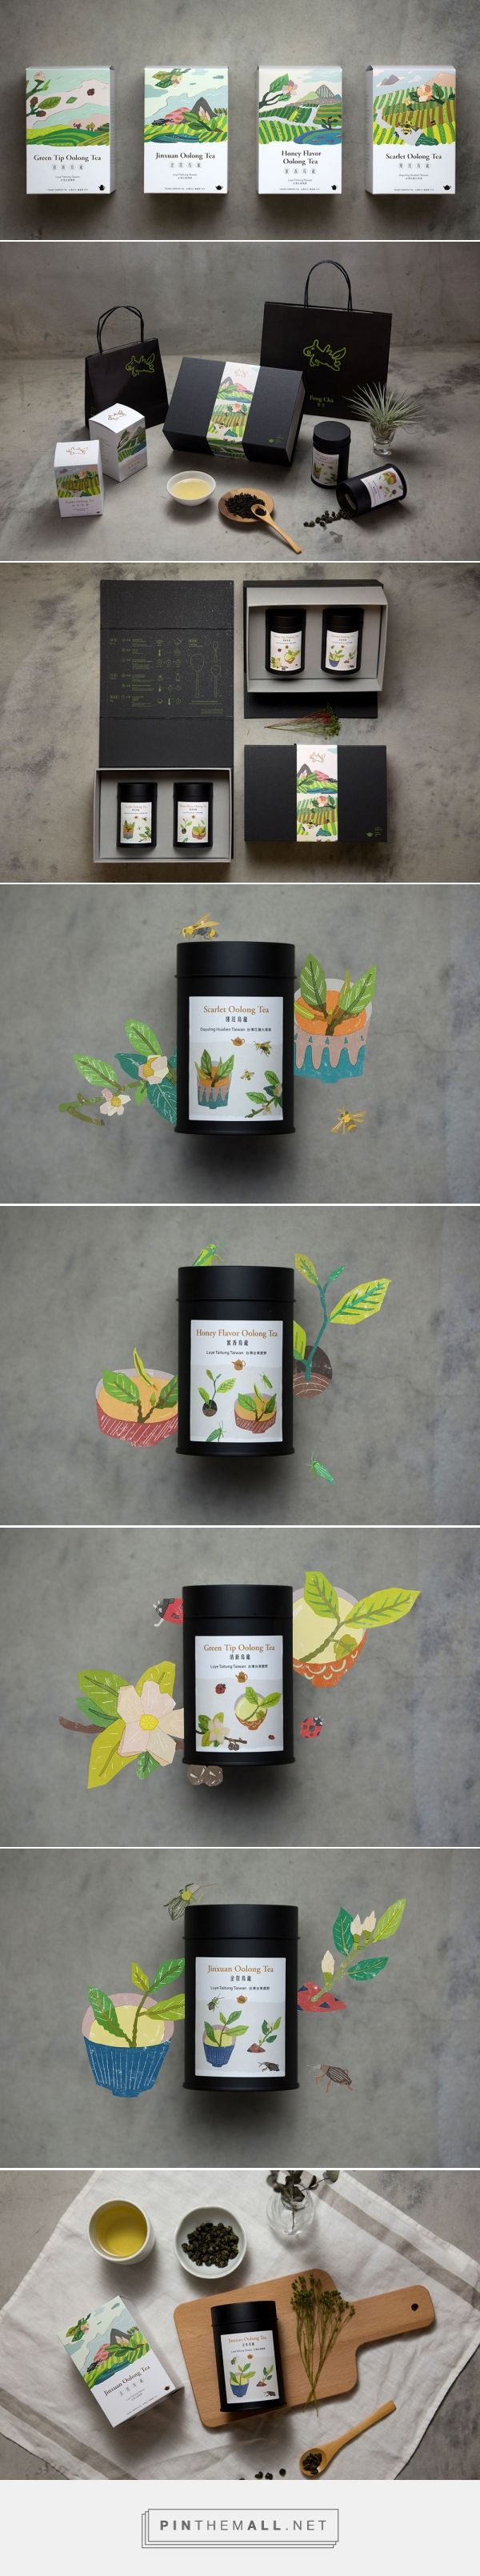 FongCha Tea — The Dieline - Branding & Packaging - created via https://pinthemall.net